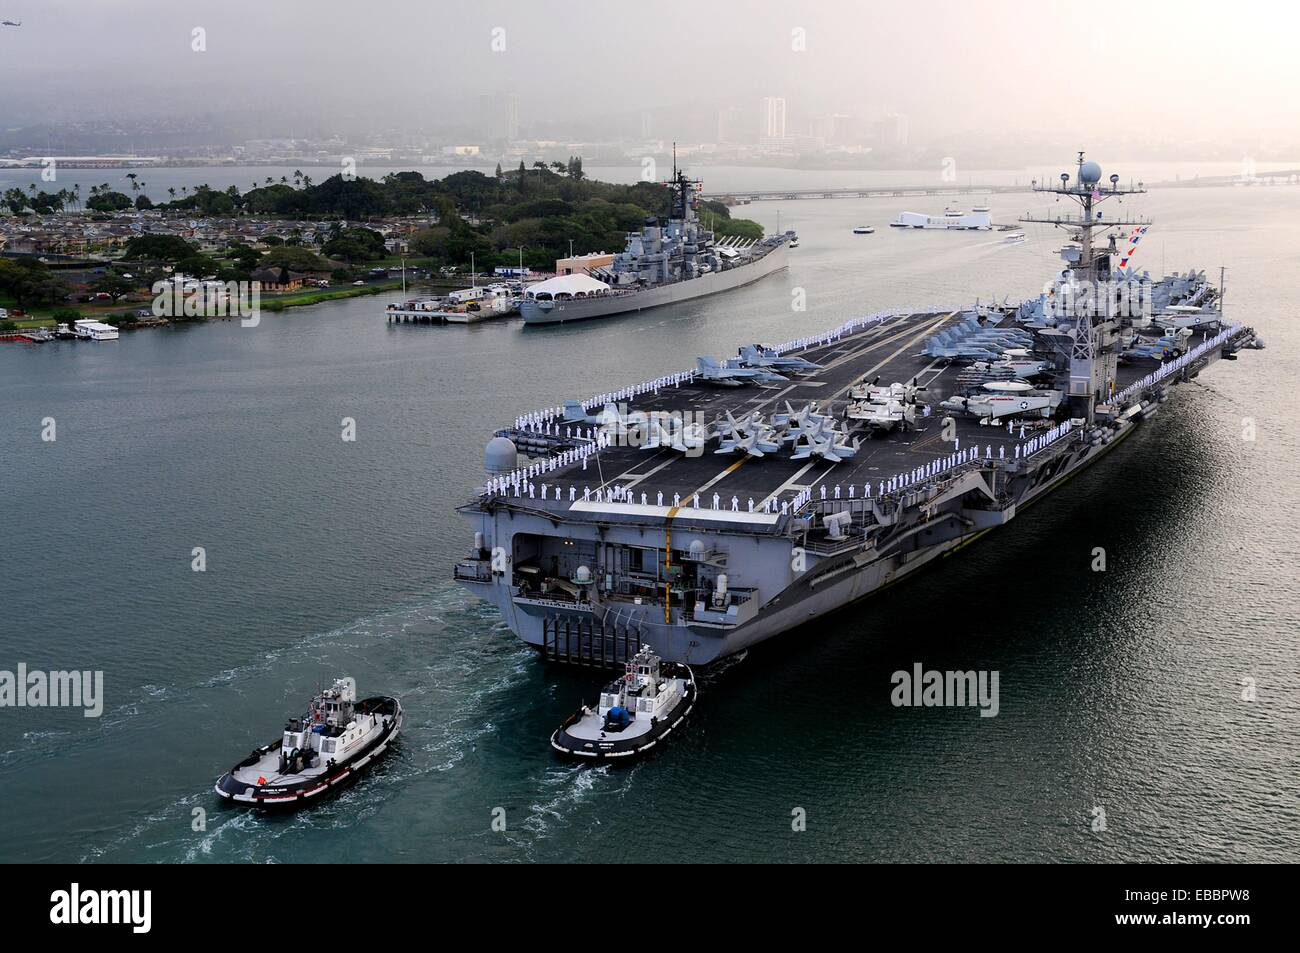 N Pm781 330 Pearl Harbor March 10 The